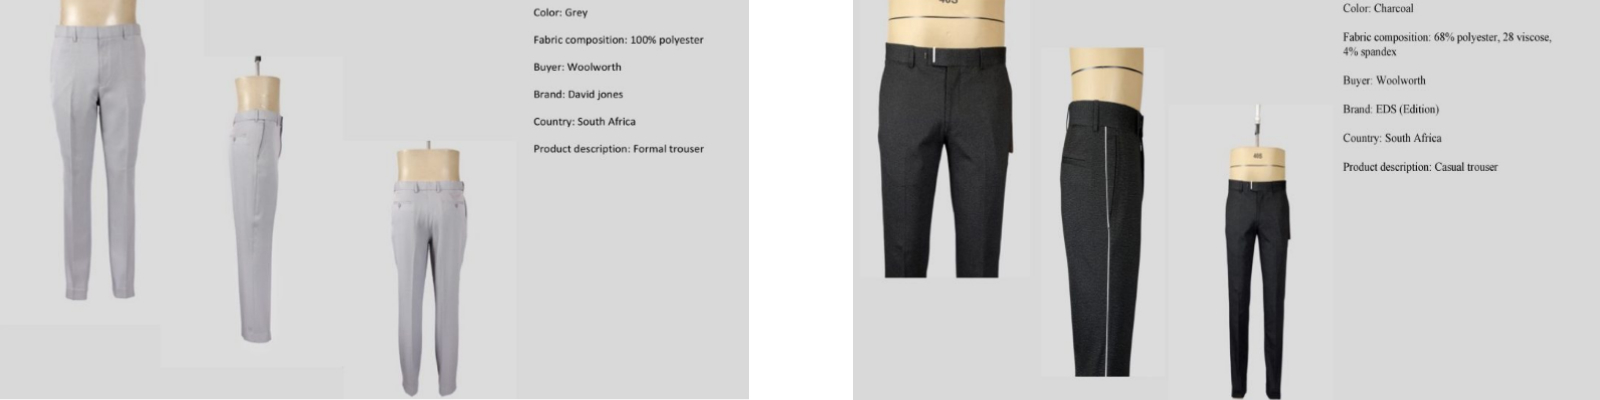 LGFG men's luxury slacks for wholesale distribution